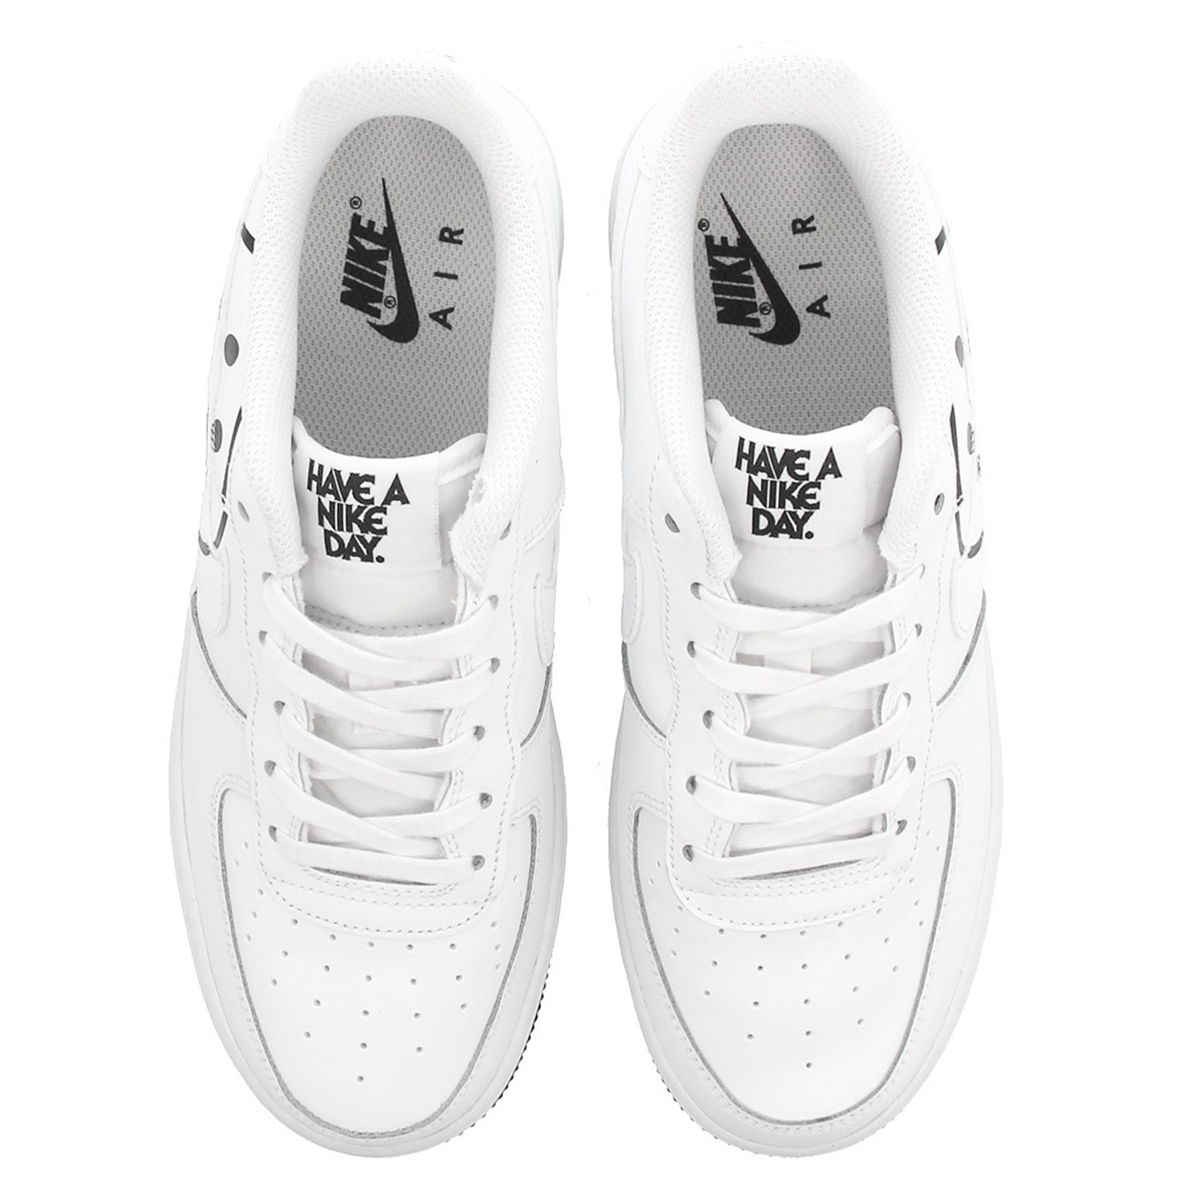 2cb8da6094315 LOWTEX BIG-SMALL SHOP: NIKE AIR FORCE 1 LV8 2 GS Nike air force 1 ...